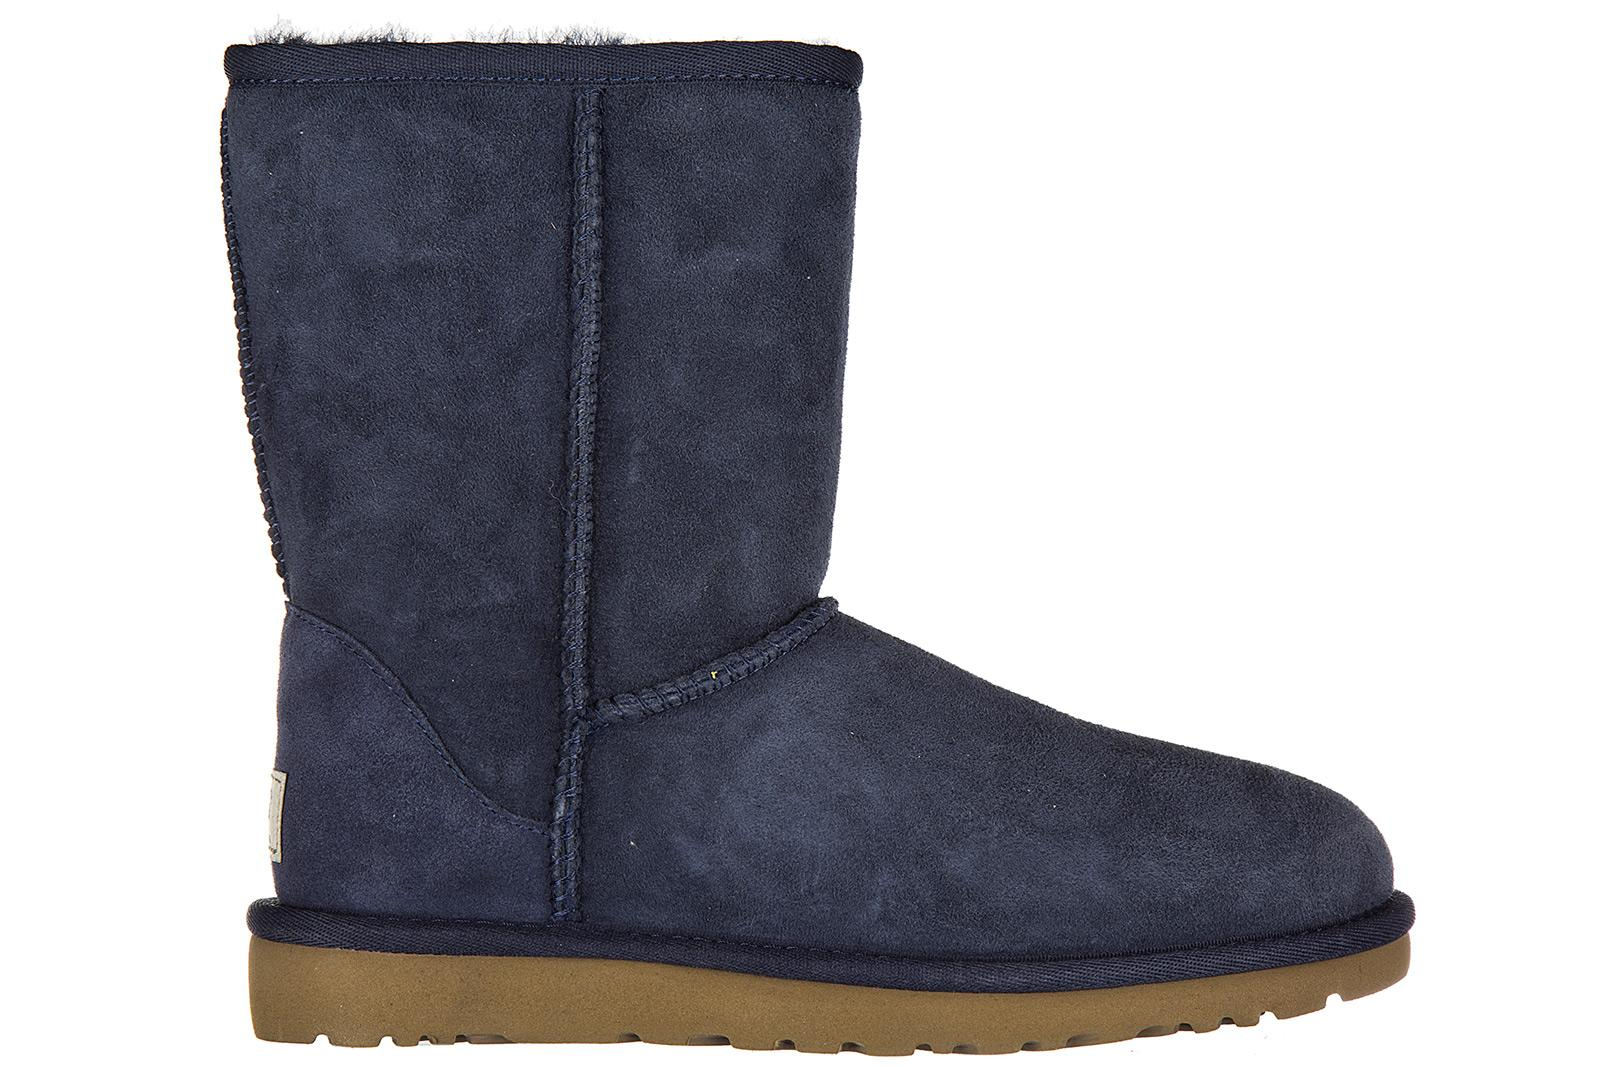 af940f2cb27 Women's Suede Ankle Boots Booties W Classic Short in Blue